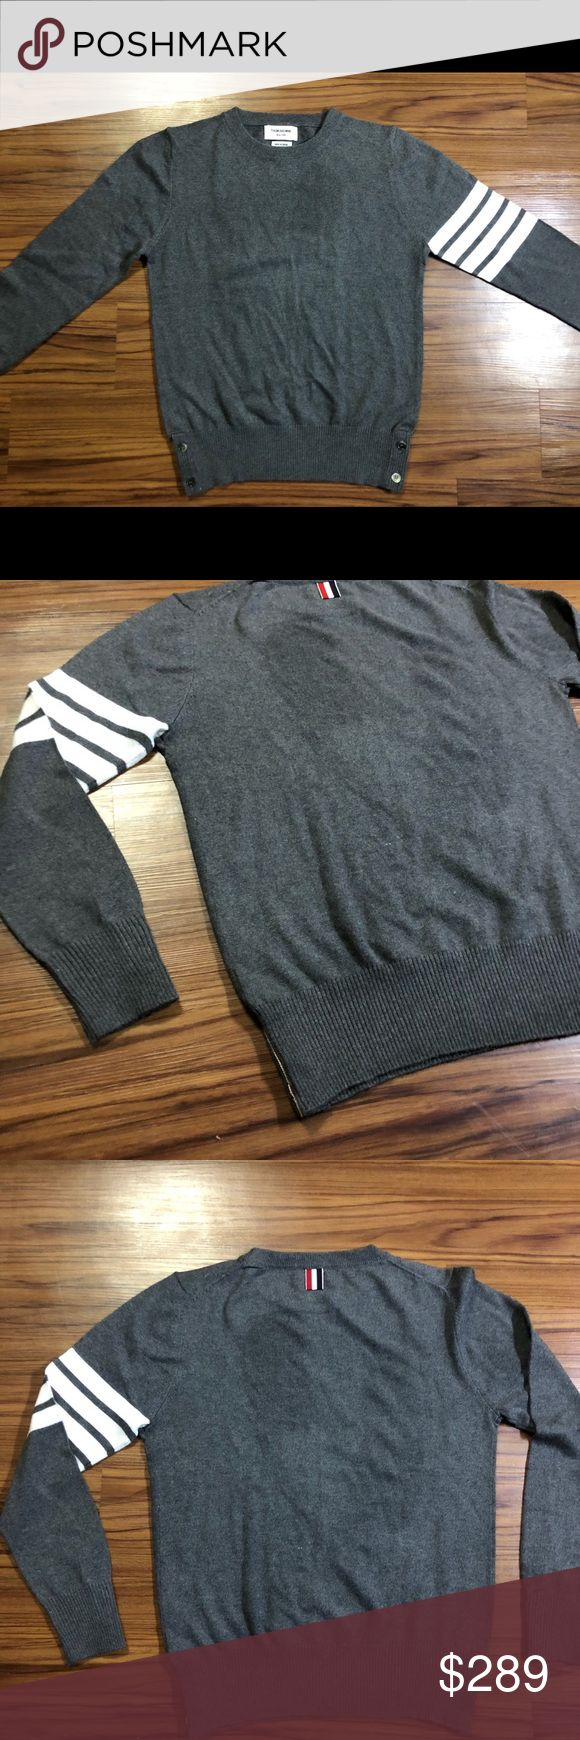 Thom Browne four stripe sweater 100%cashmere Brand new never worn without tags Thom Browne Sweaters Crewneck